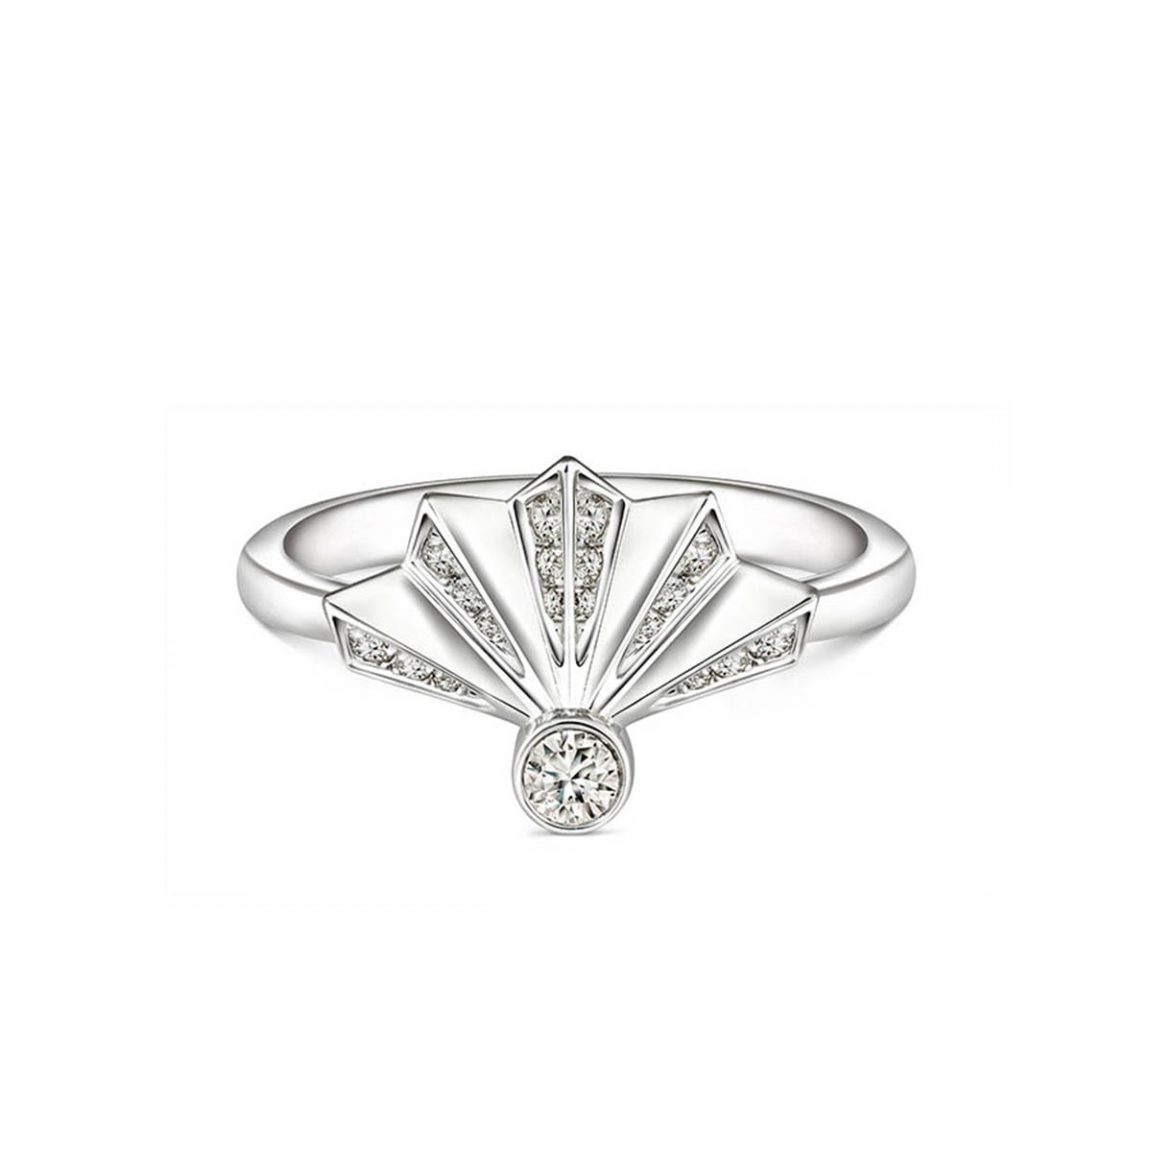 Soleluna AURY Folding Fan Diamond Ring